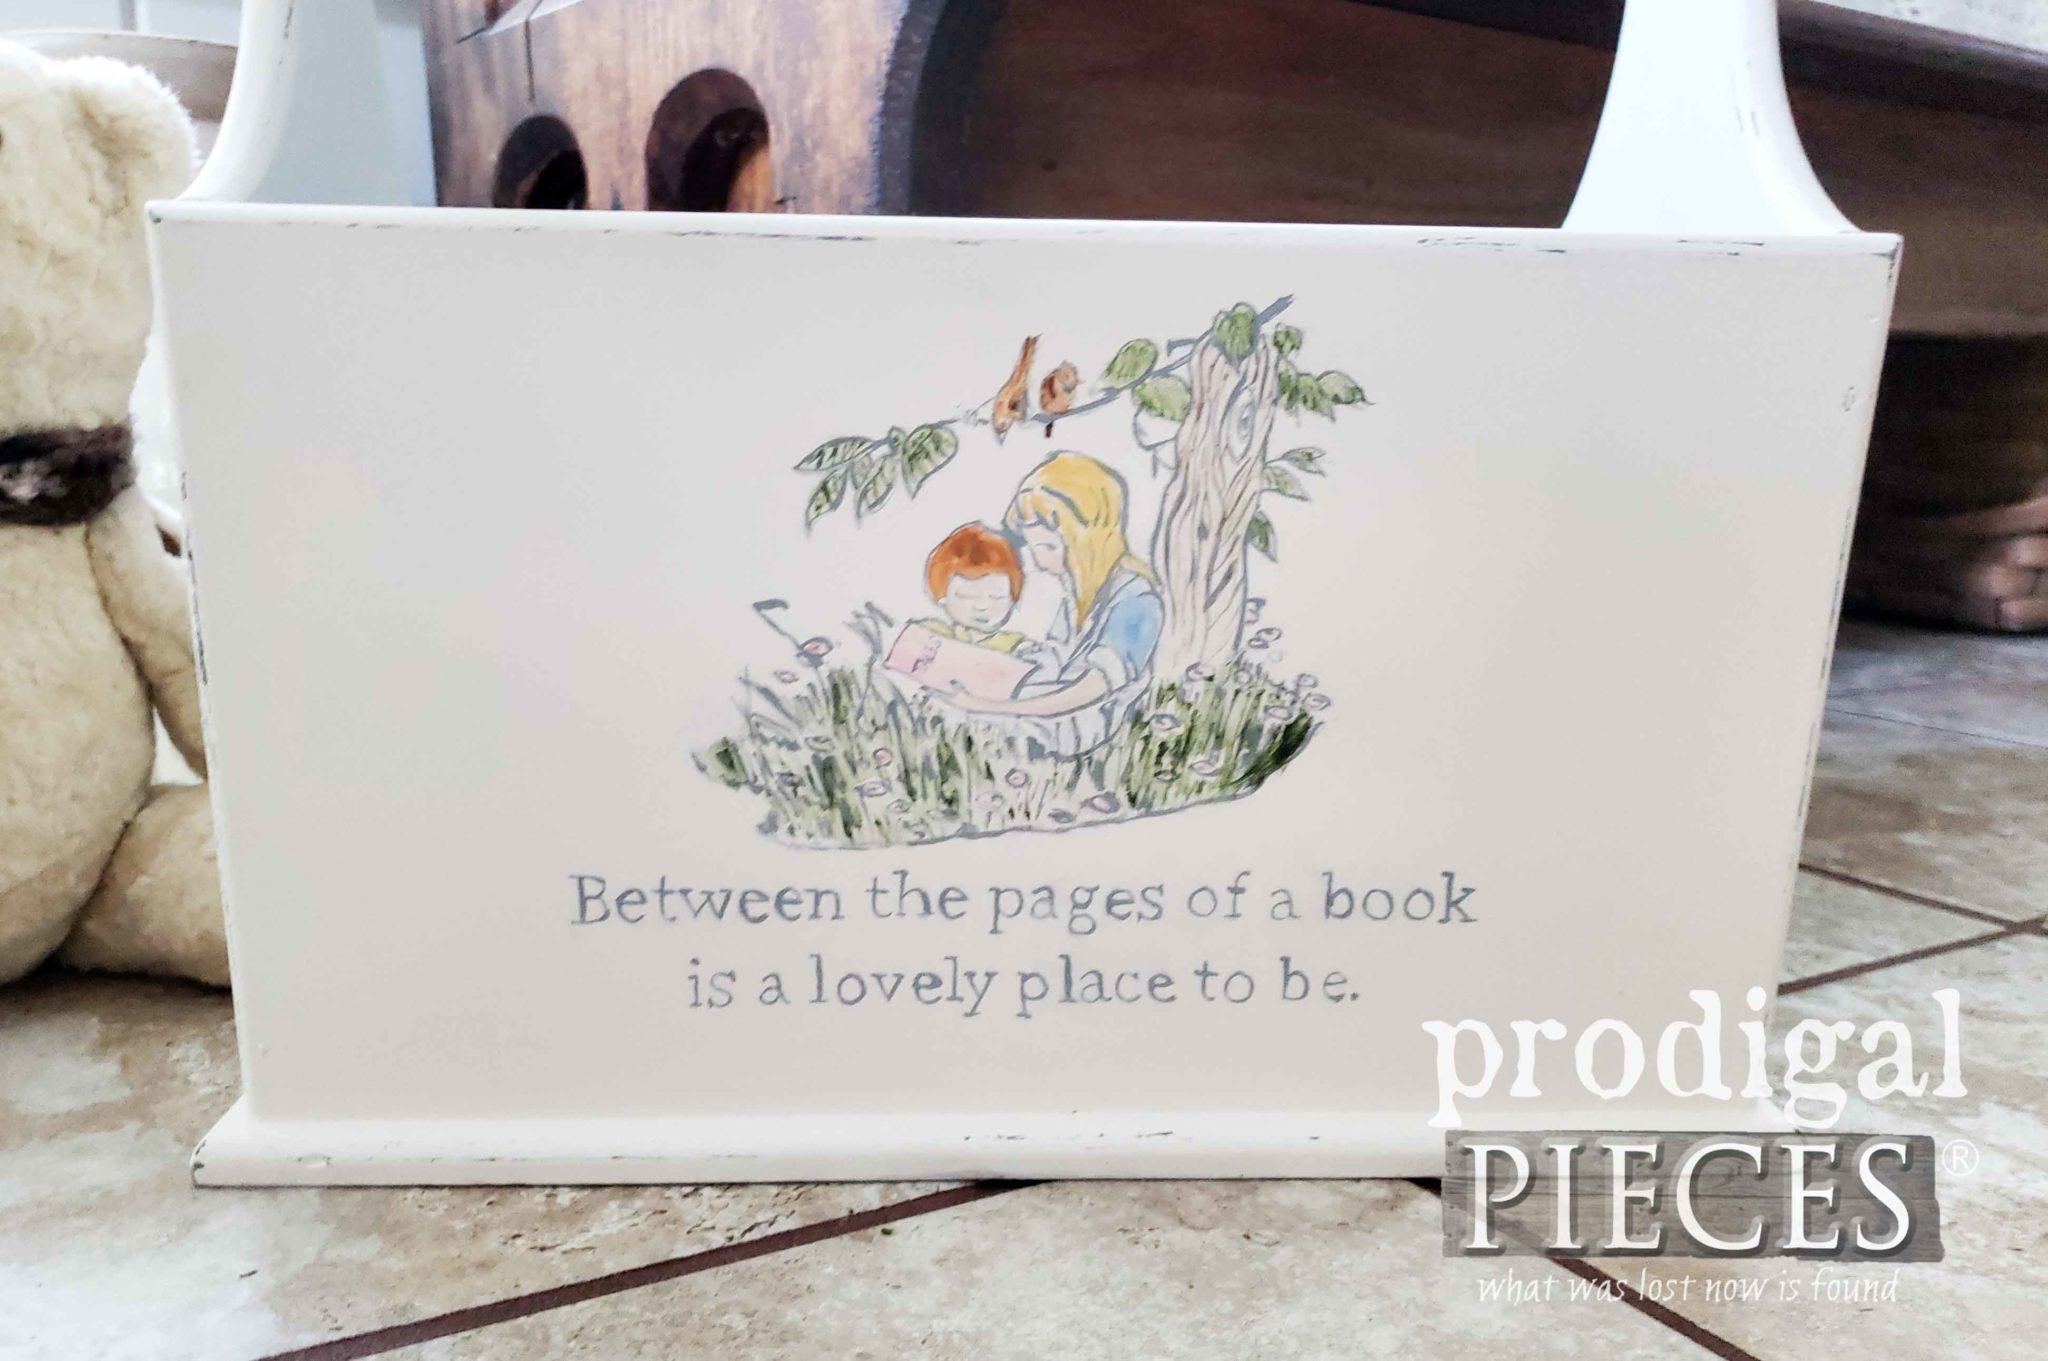 Vintage Hand-Painted Book Caddy by Larissa of Prodigal Pieces | prodigalpieces.com